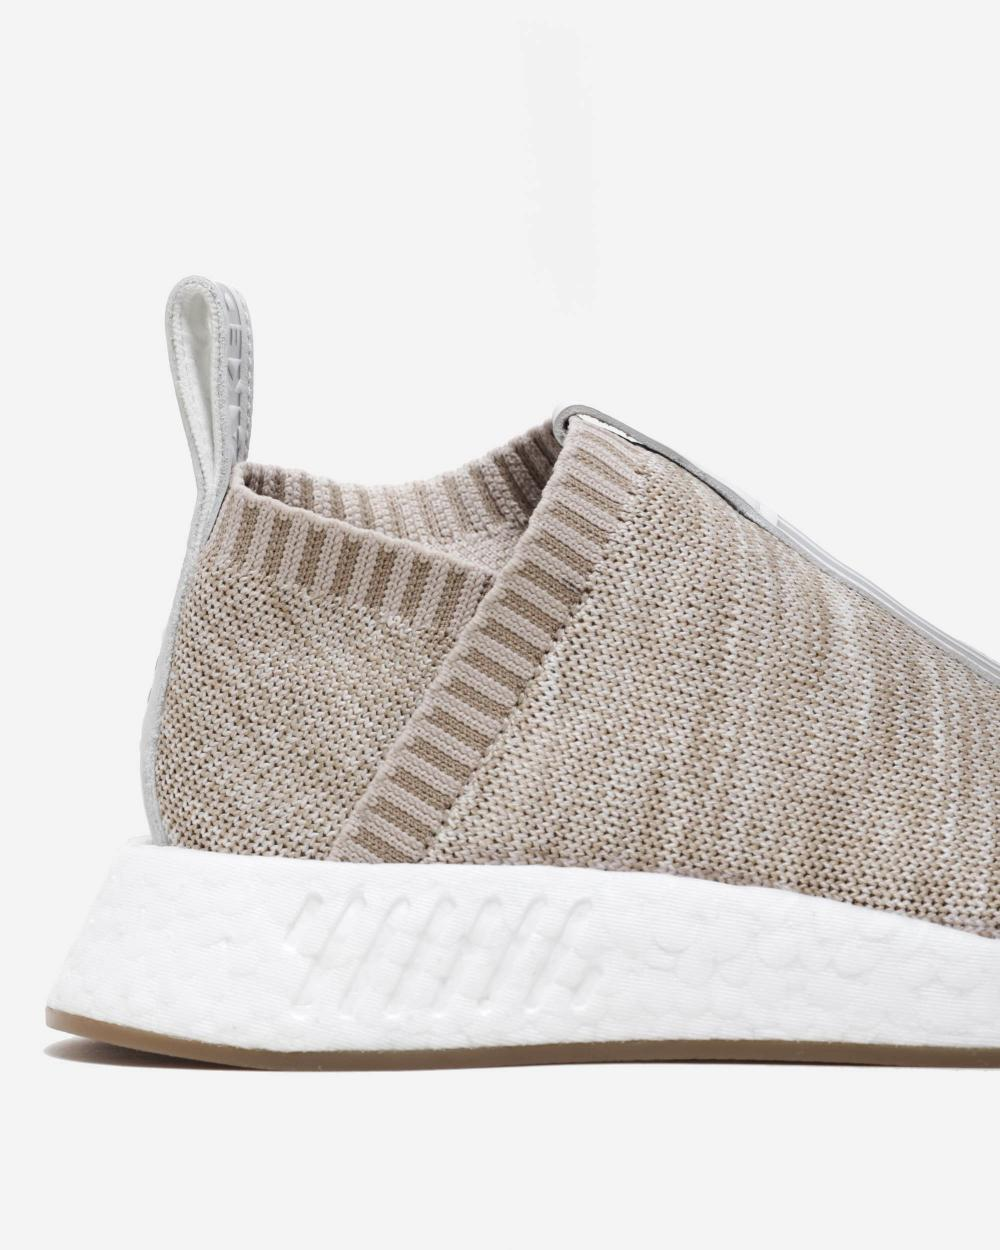 KITH x NAKED x adidas Consortium NMD CS2 BY2596 Sandstone 1